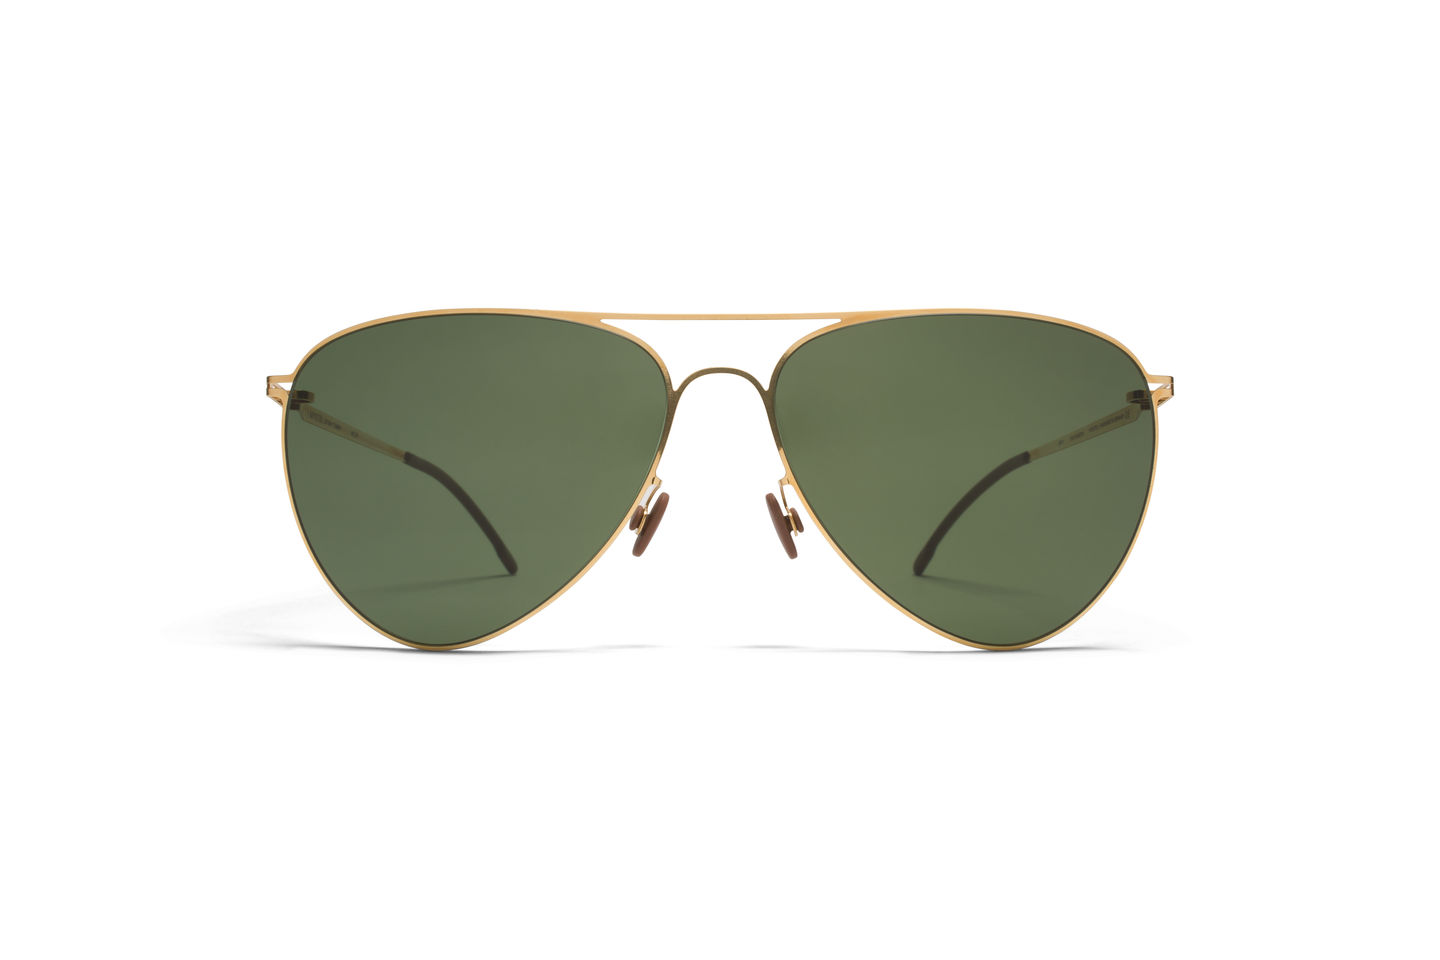 MYKITA Pilotensonnenbrille TJURRE in MYKITA JOURNALs Tropical Edit